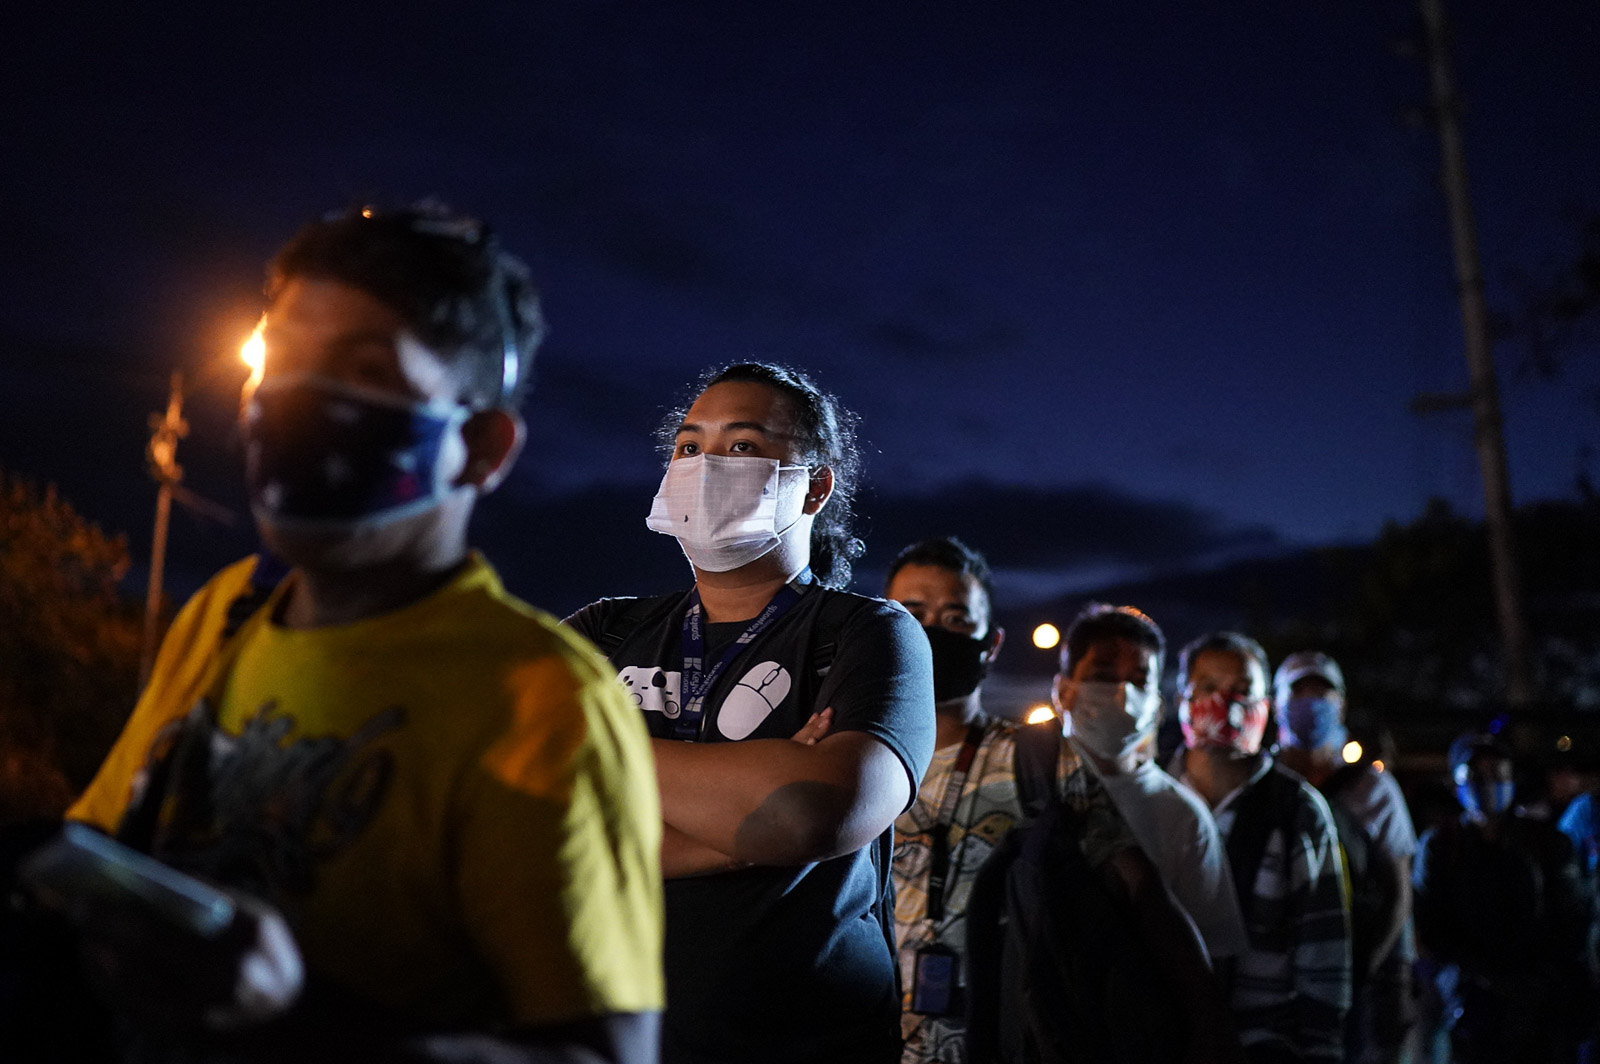 QUARANTINE. Policemen patrolling the community quarantine control point at the Susana Heights-SLEX exit check body temperature and identification cards of commuters on March 16, 2020. Photo by Martin San Diego/Rappler